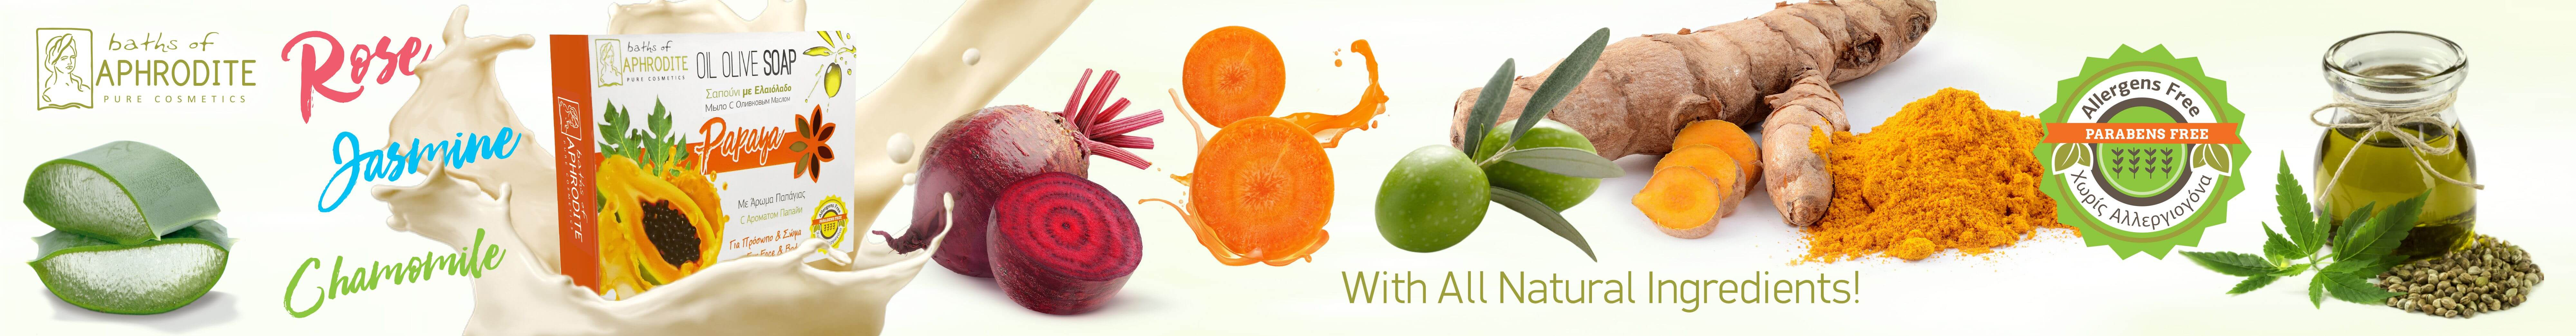 BANNER ALLERGENS FREE SOAPS